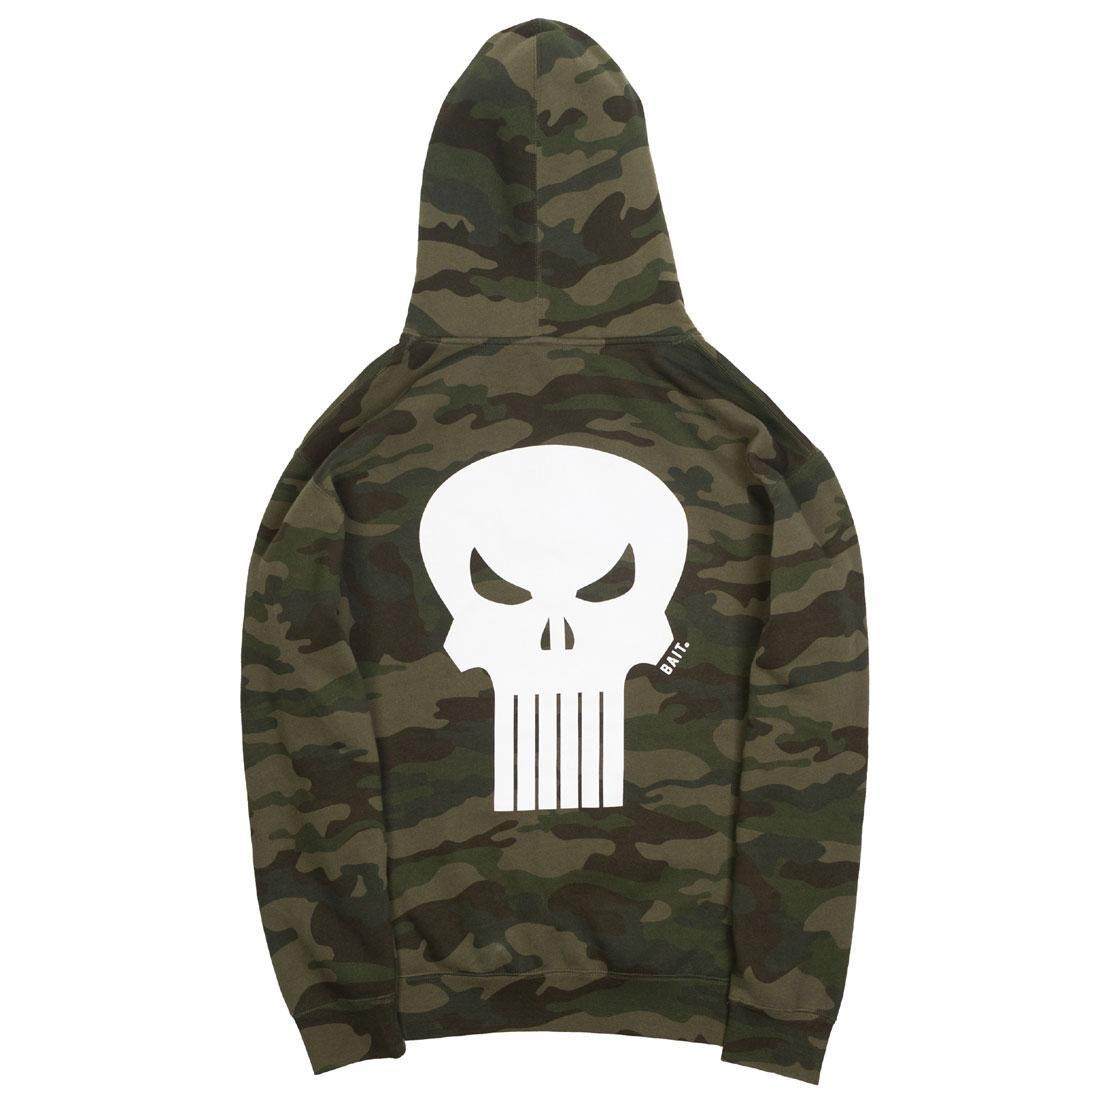 BAIT x Marvel Punisher Men Skull Hoody (camo / forest)